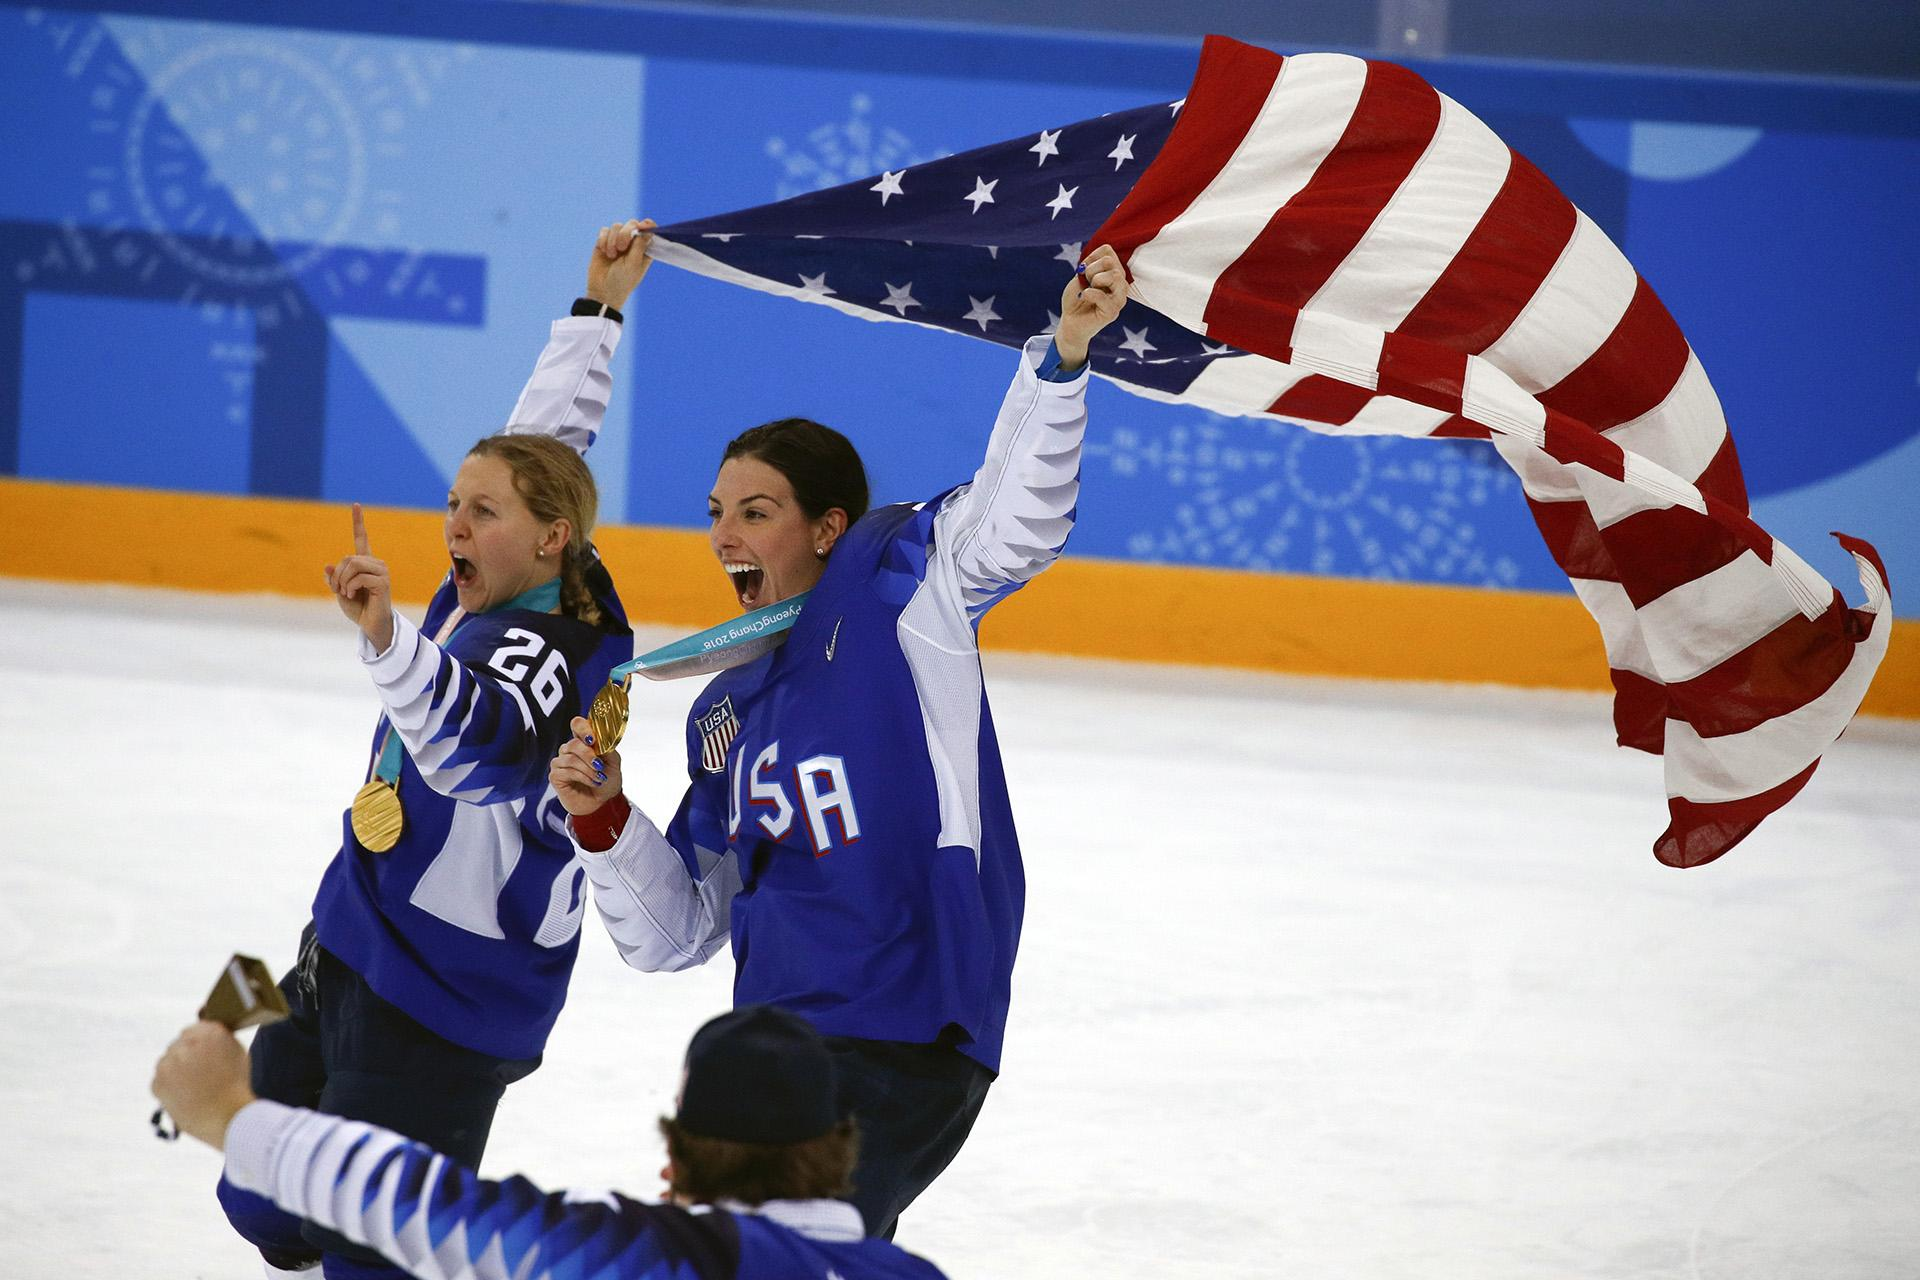 In this Feb. 22, 2018, file photo, United States' Kendall Coyne Schofield, left, and Hilary Knight celebrate after winning the women's gold medal hockey game against Canada at the 2018 Winter Olympics in Gangneung, South Korea. (AP Photo / Jae C. Hong, File)